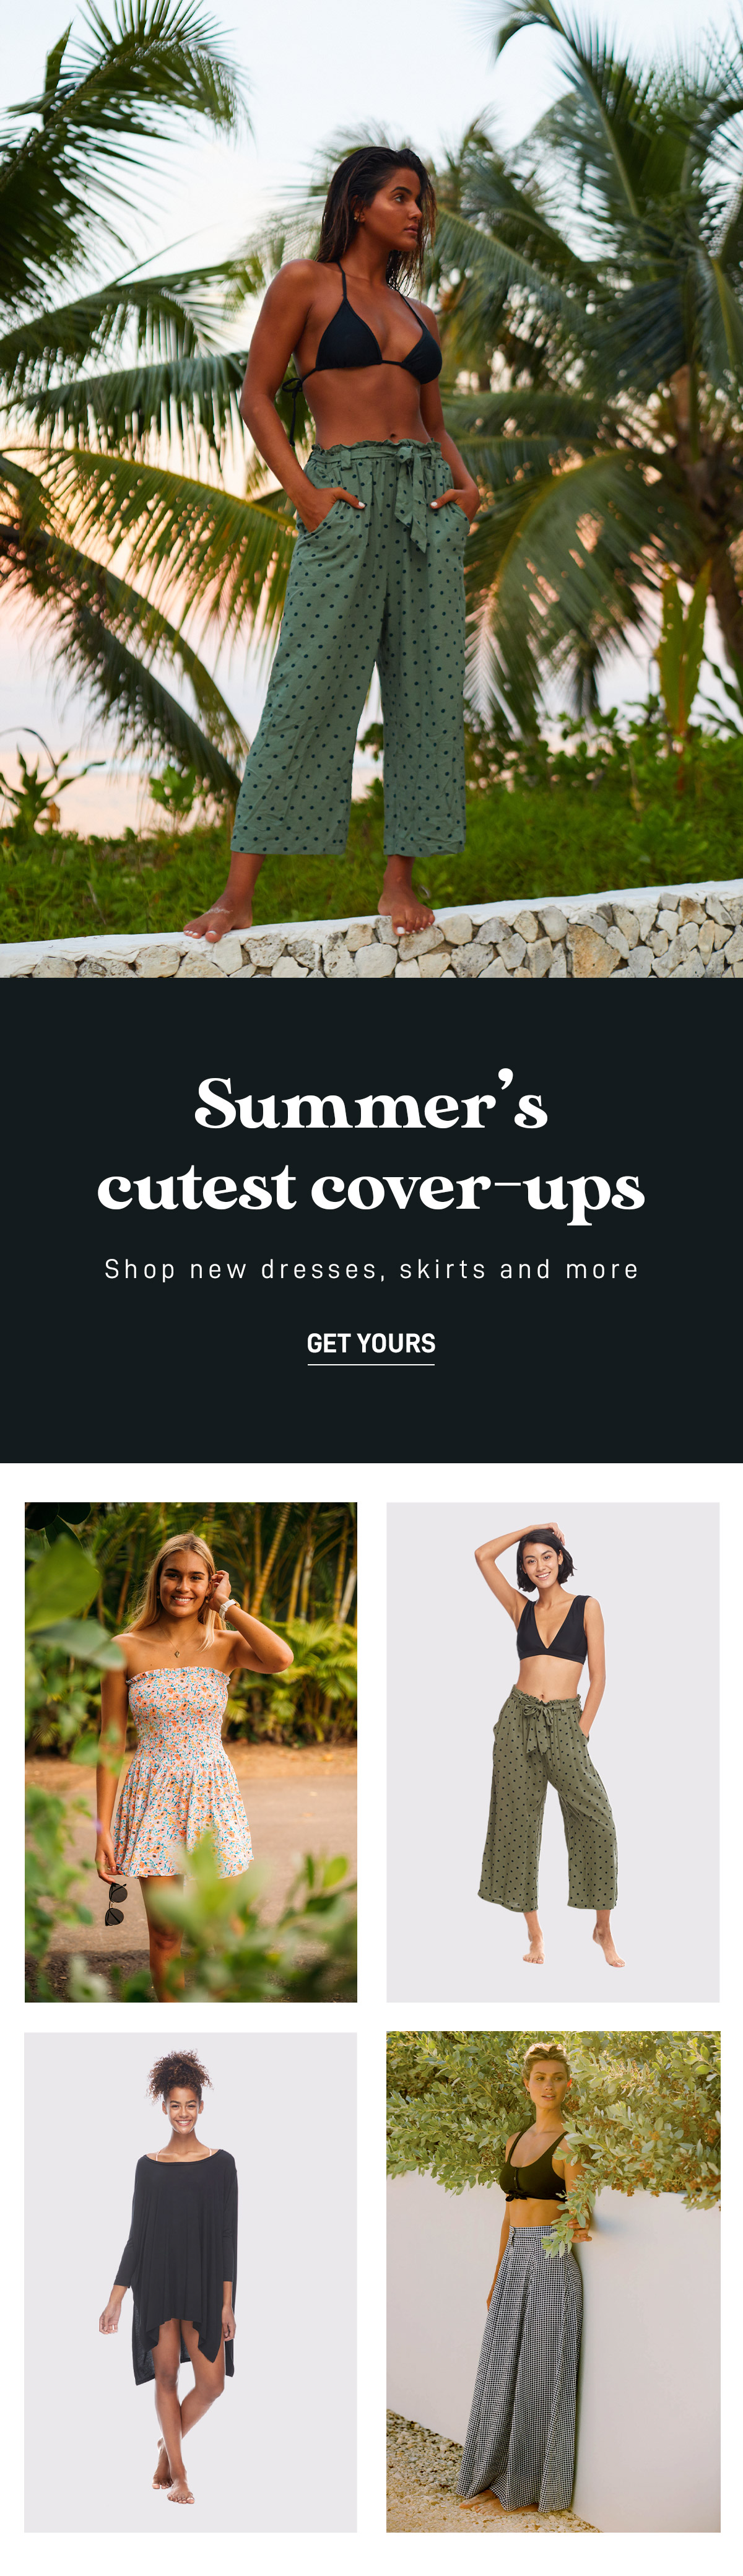 Summer''s cutest cover-ups | Shop new dresses, skirts and more | Shop Now